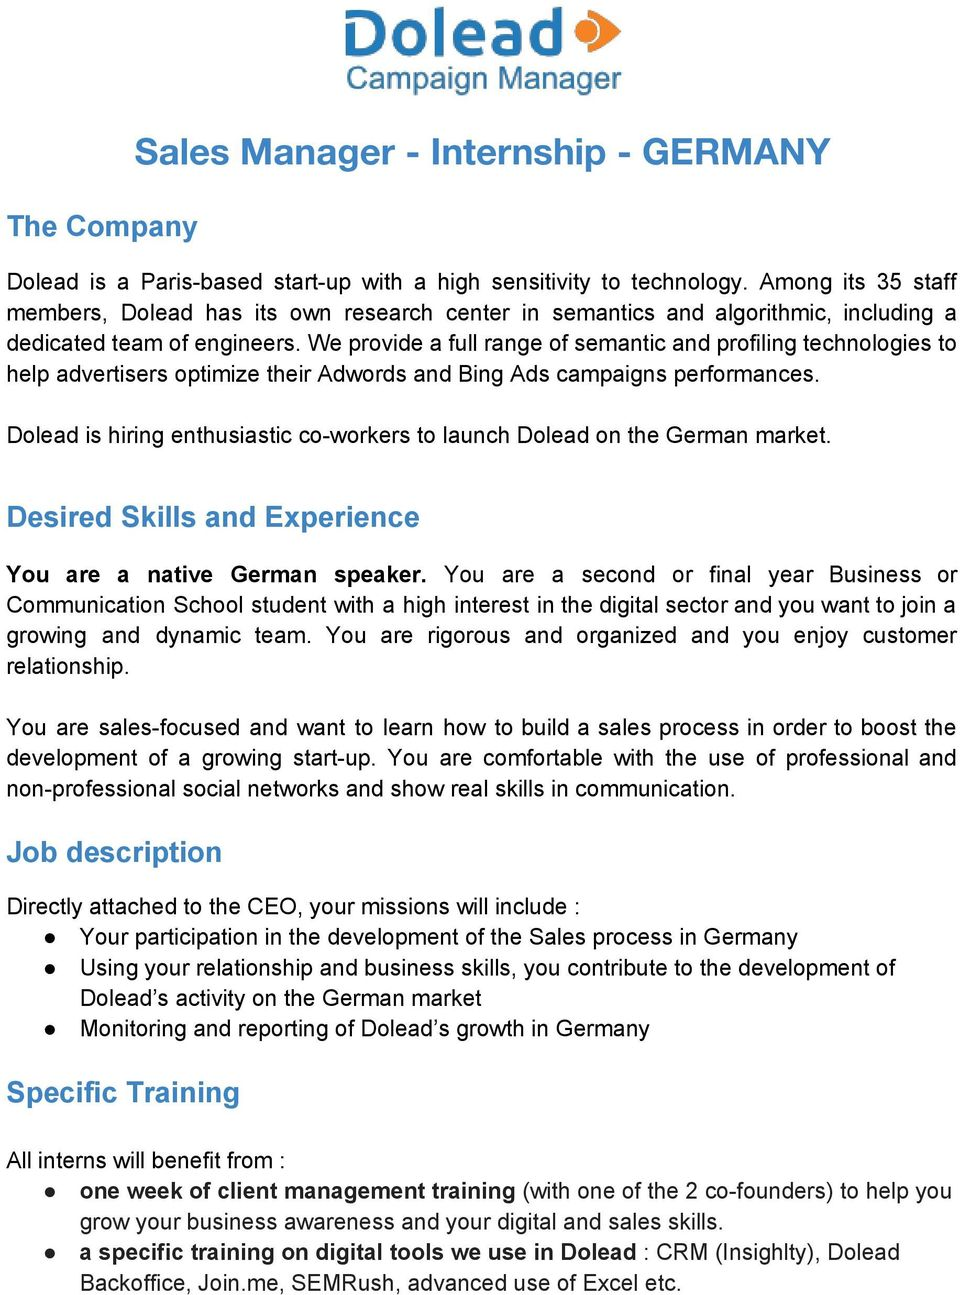 Account Manager H/F - CDI - France - PDF